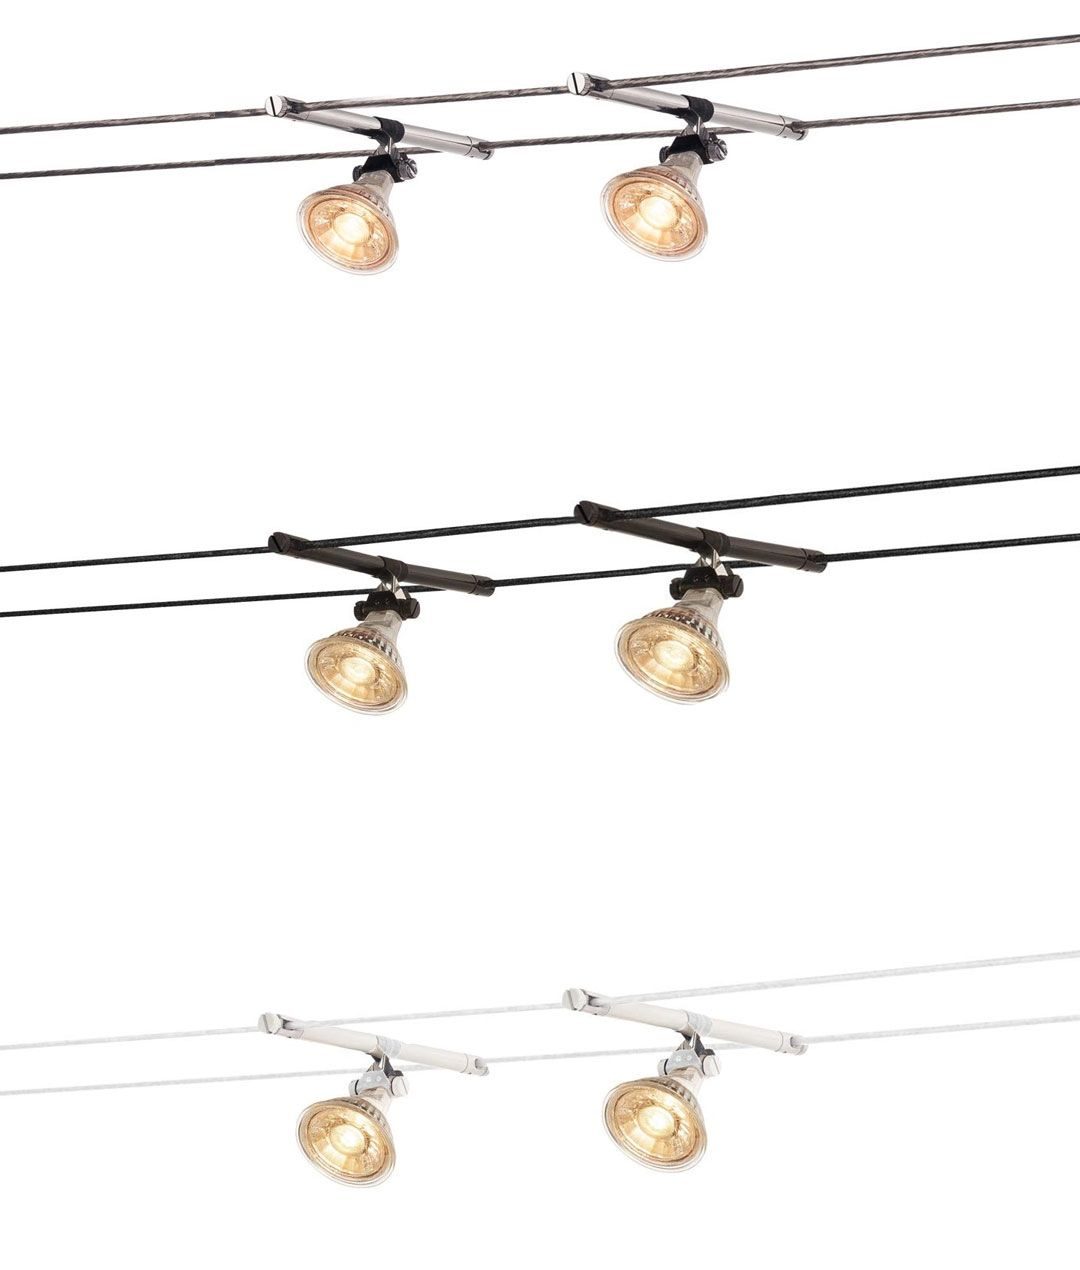 Simple Adjustable Spotlights for Tension Wire System